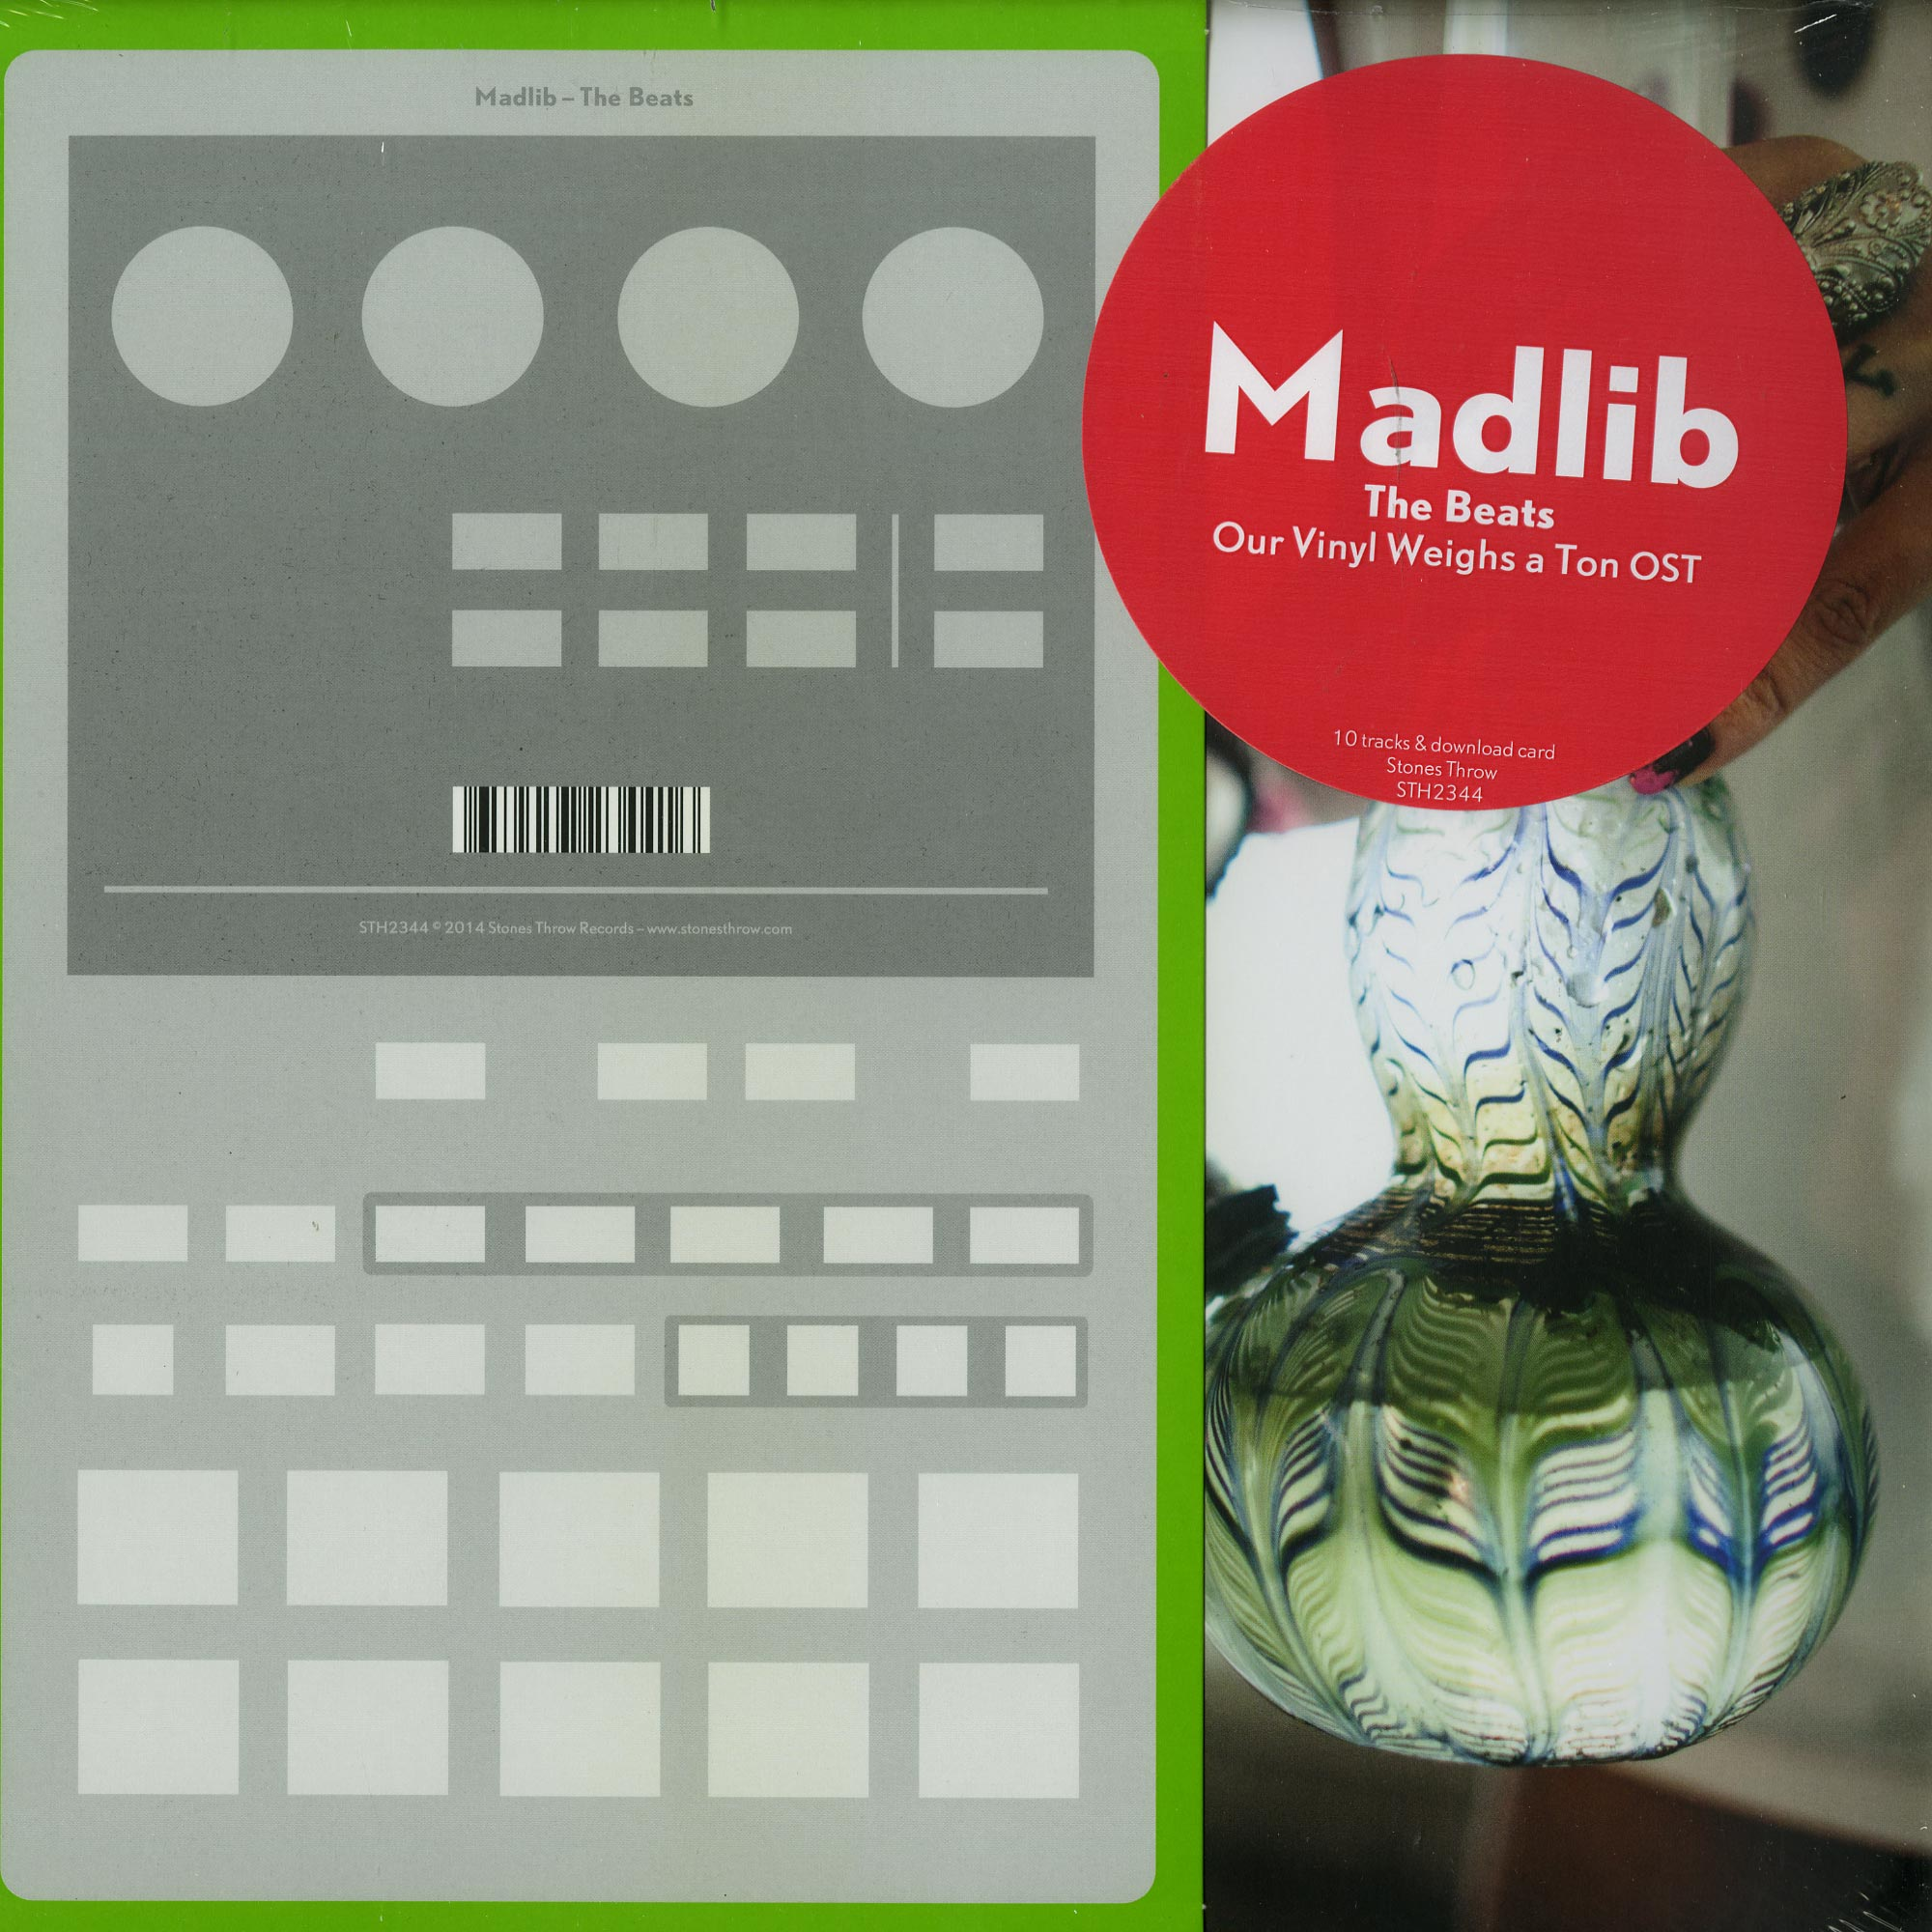 Madlib - THE BEATS: OUR VINYL WEIGHS A TON O.S.T.